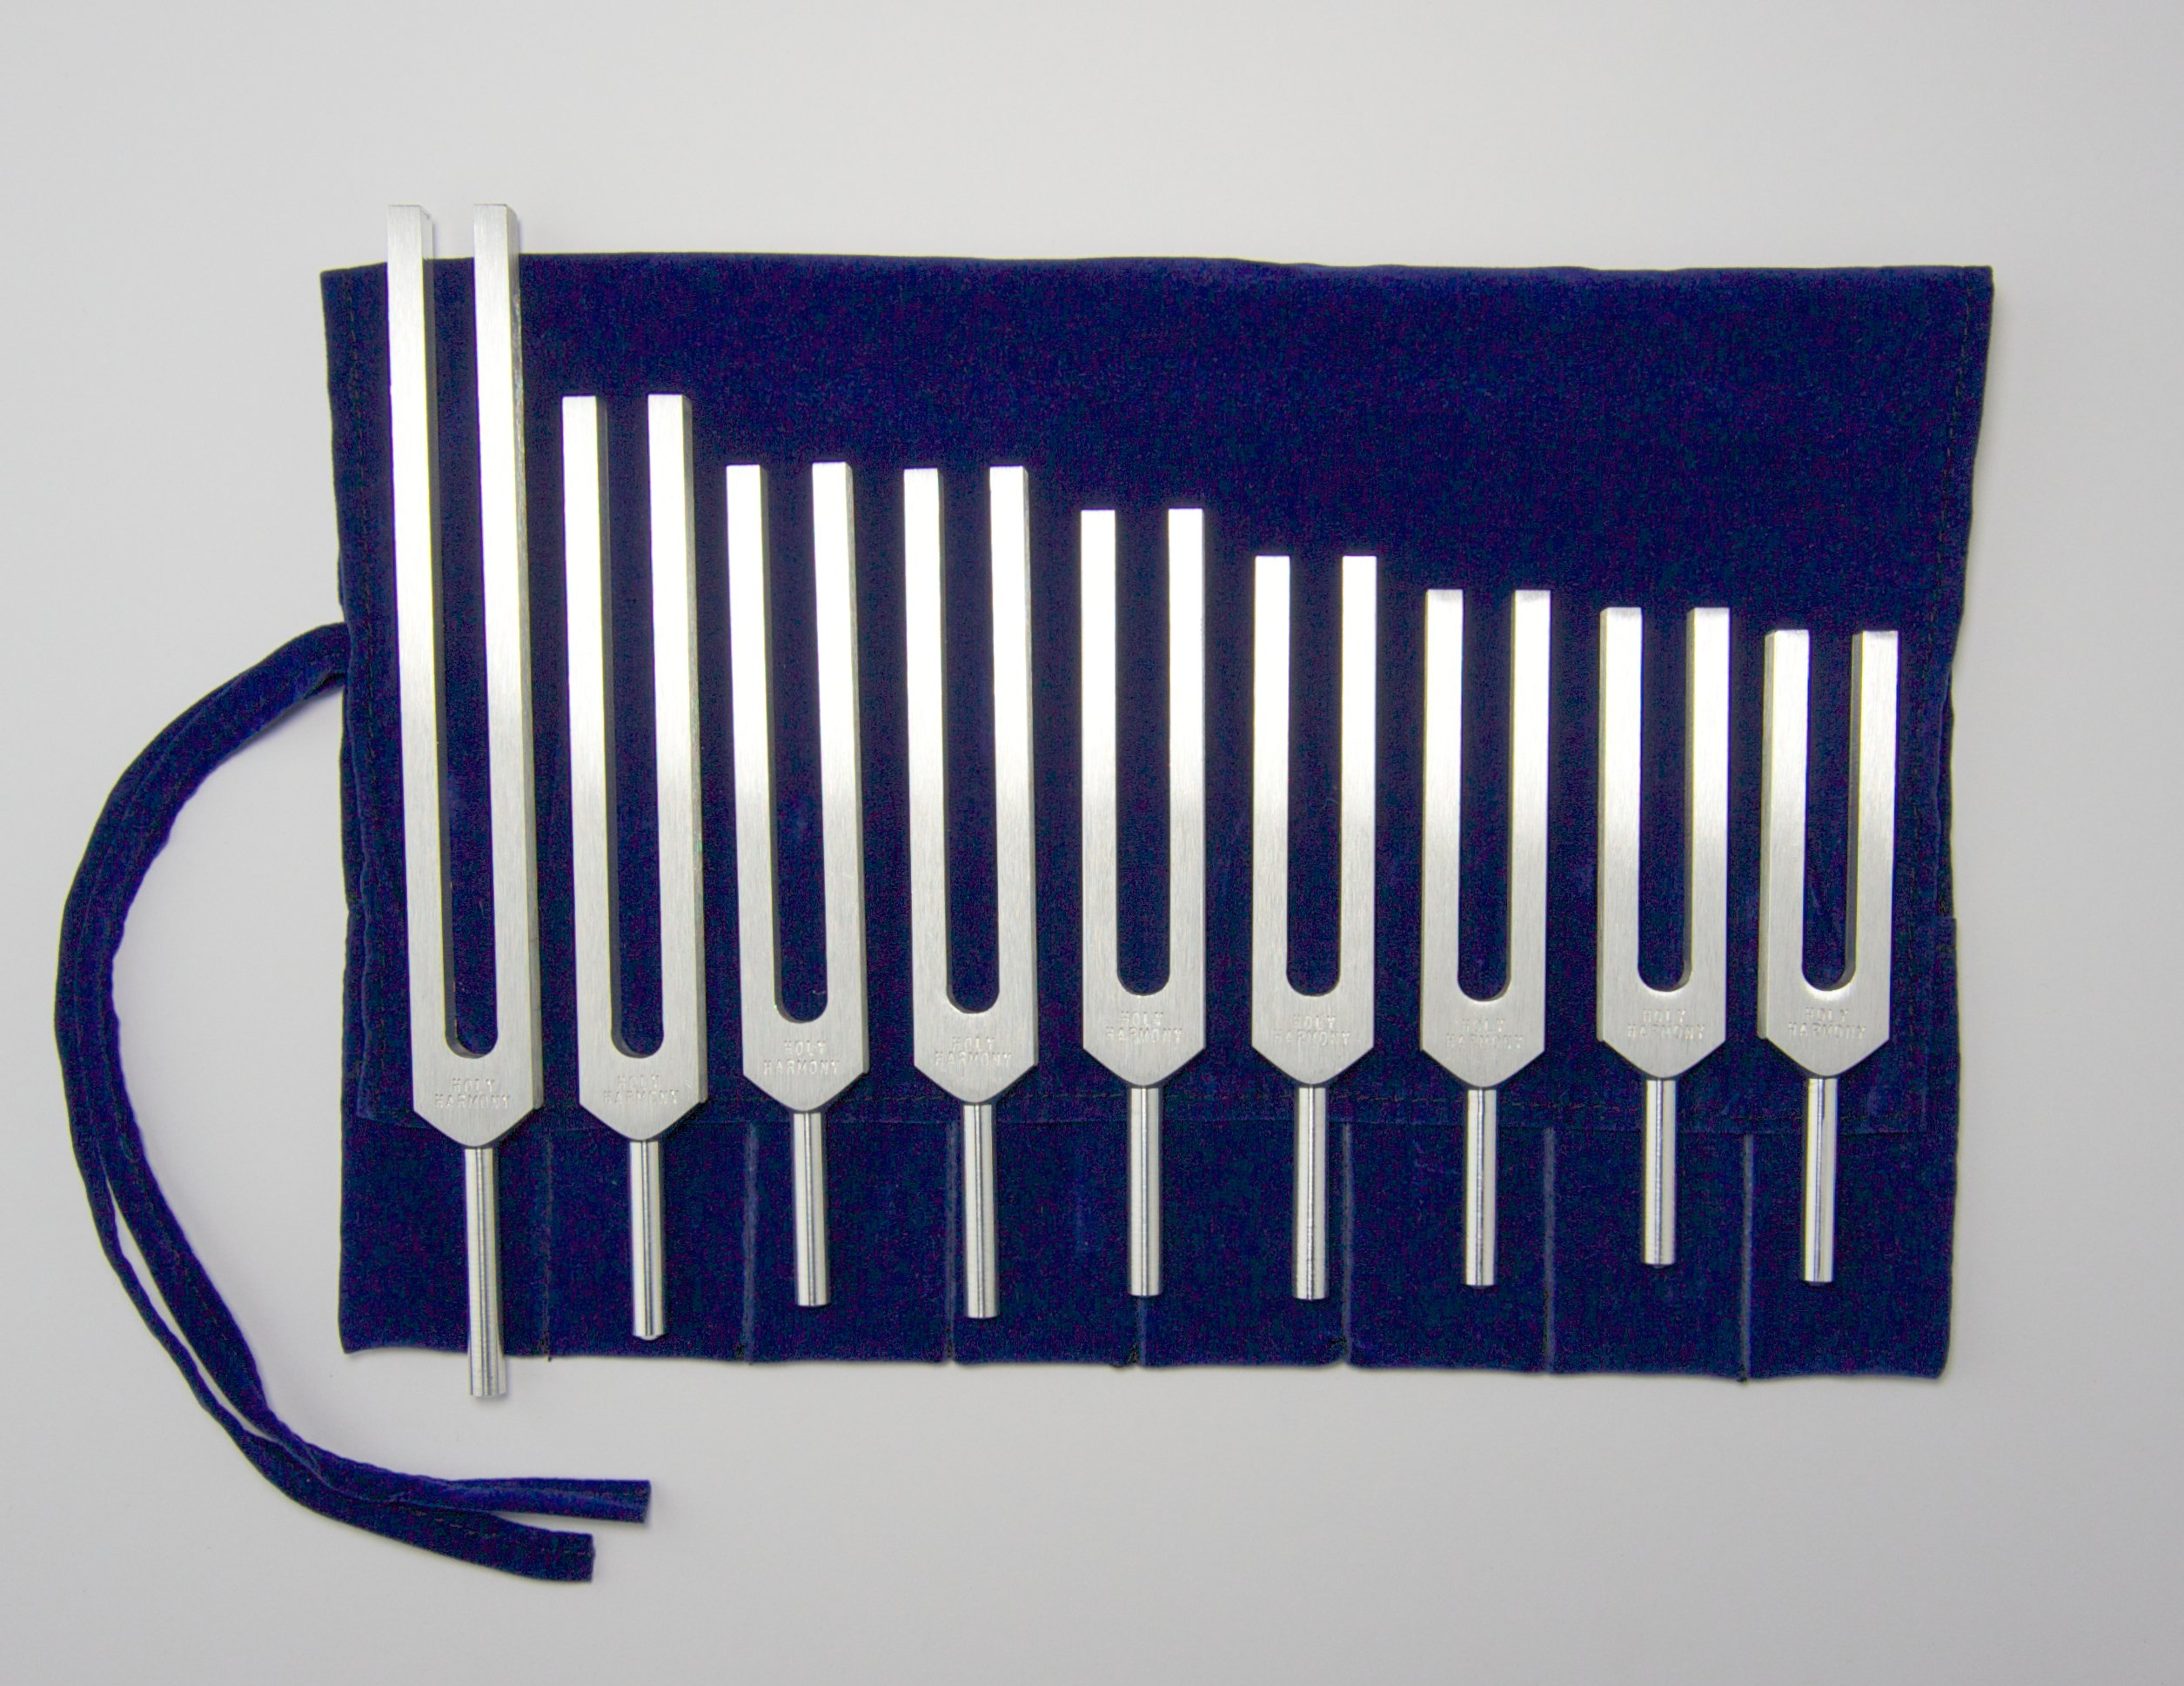 The Holy Harmony Solfeggio Tuning Forks